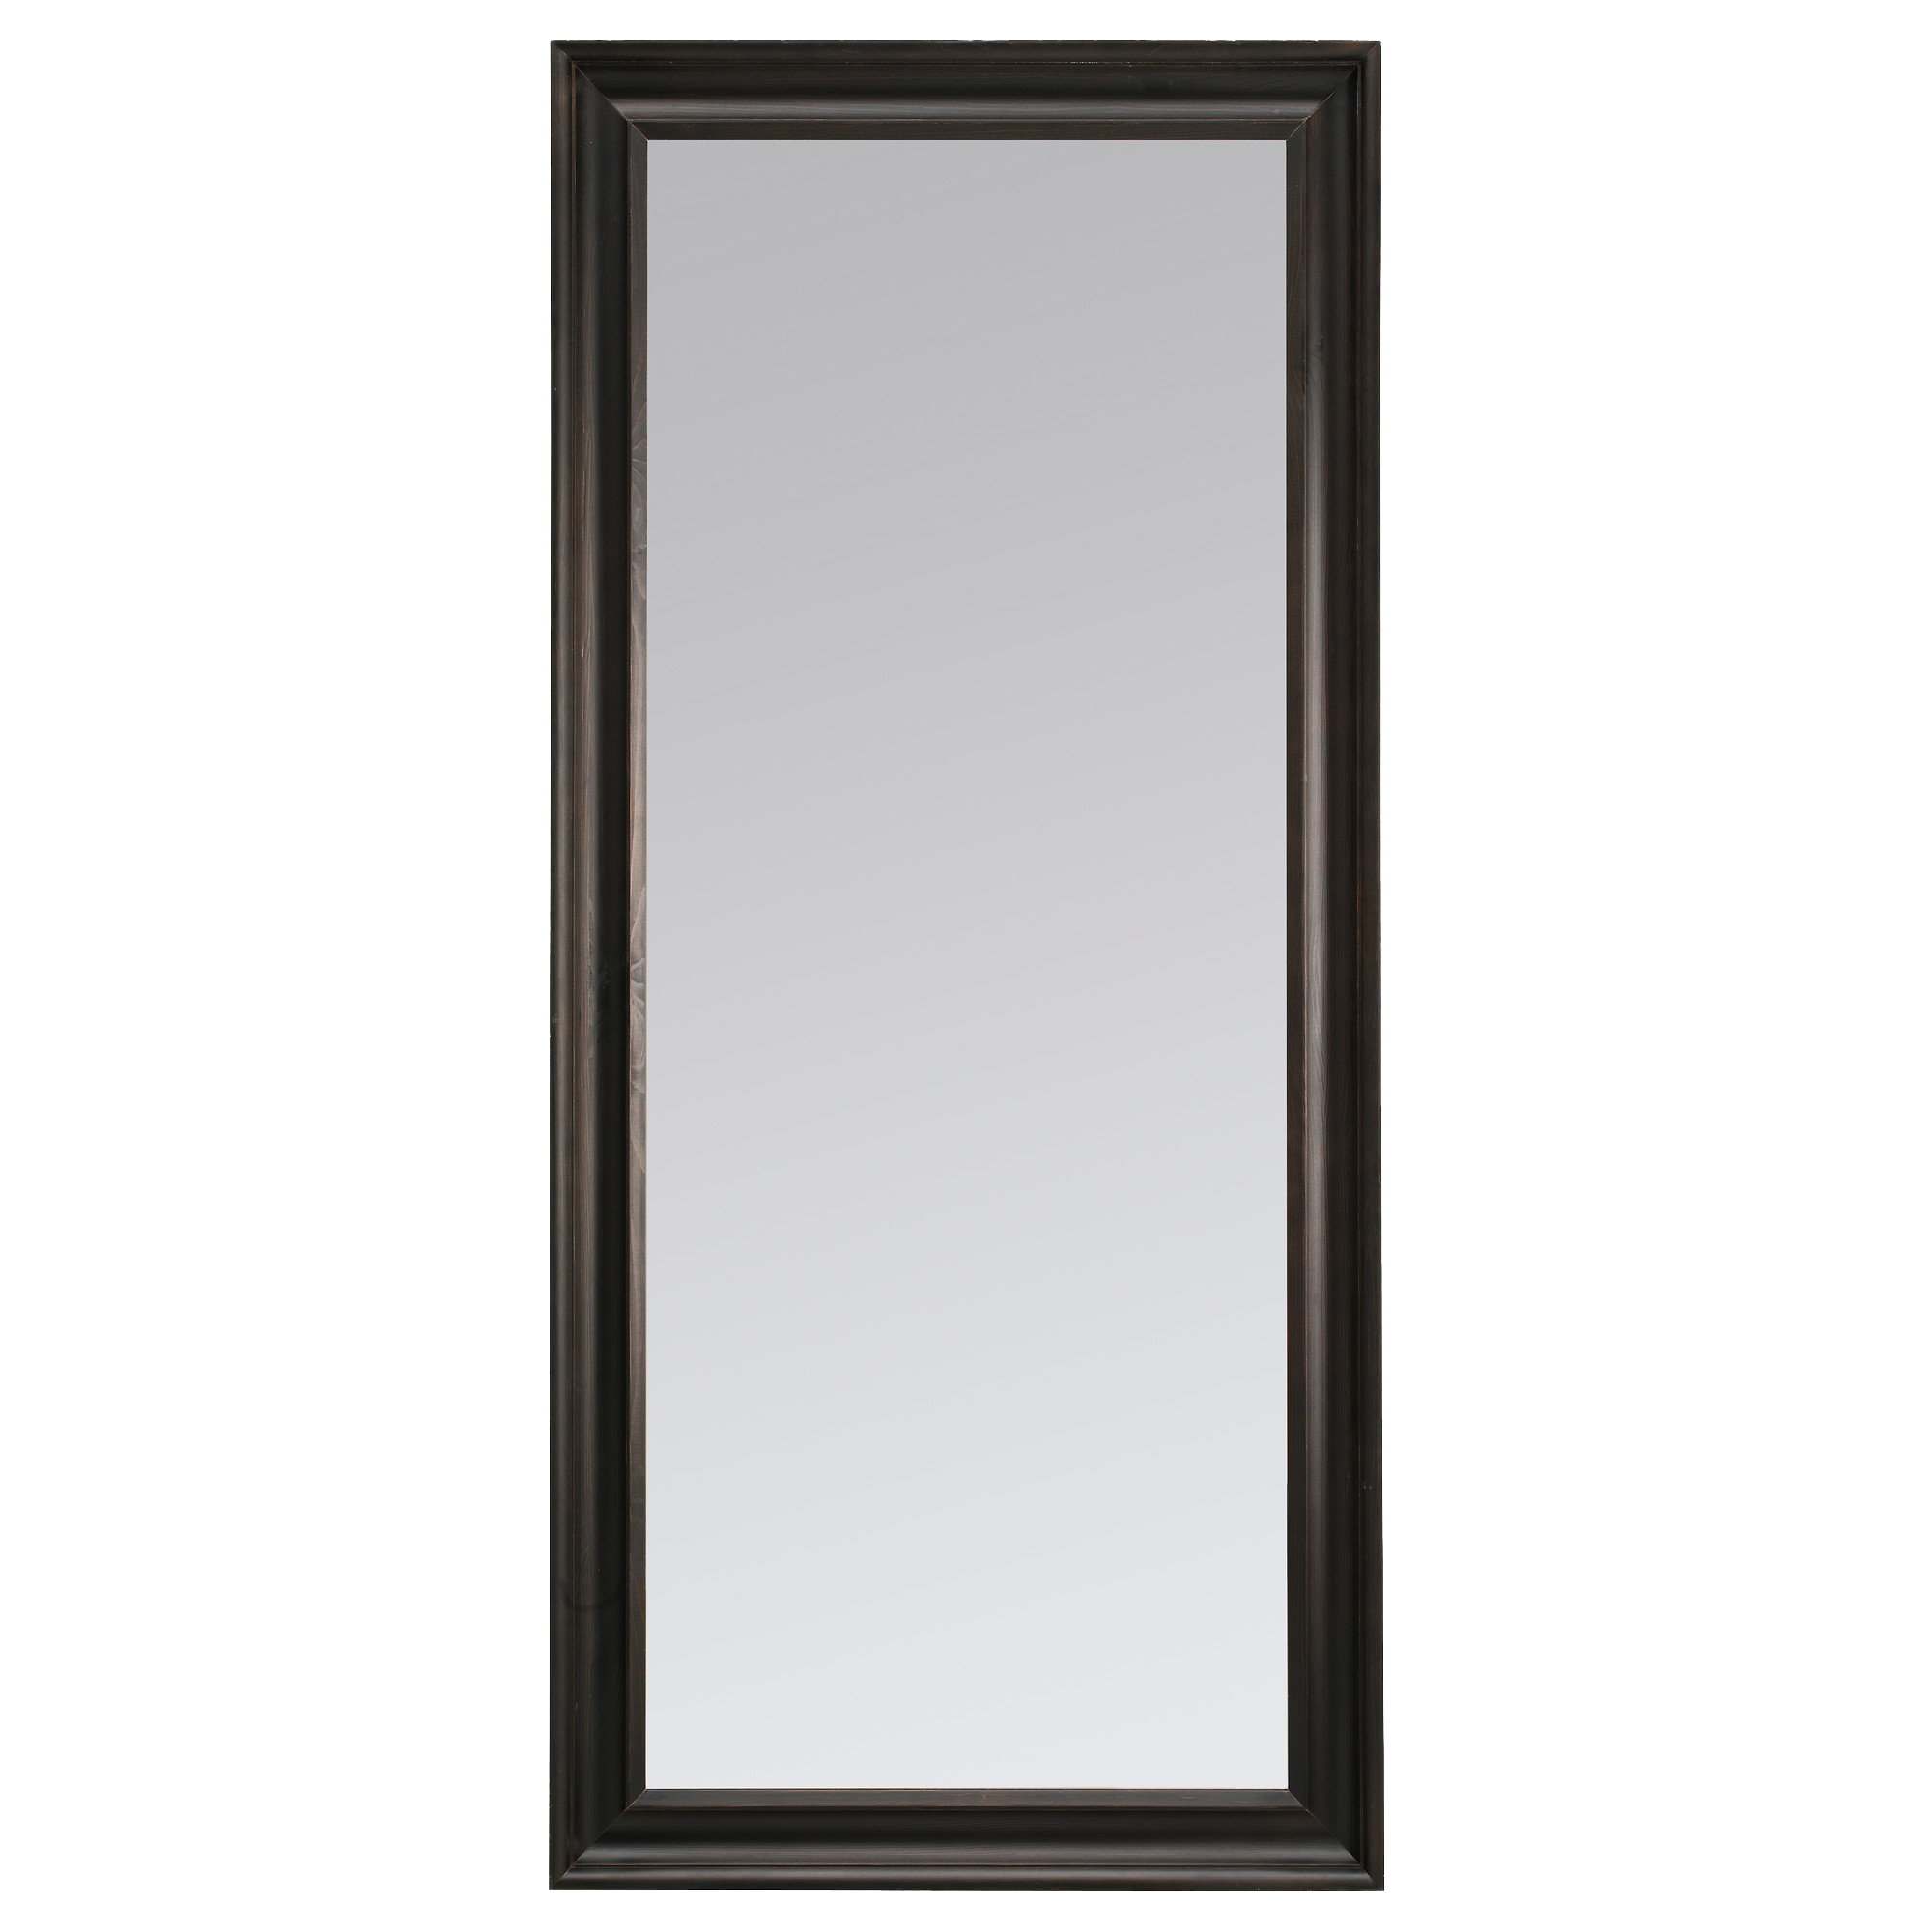 mirror clipart transparent background collection #26322